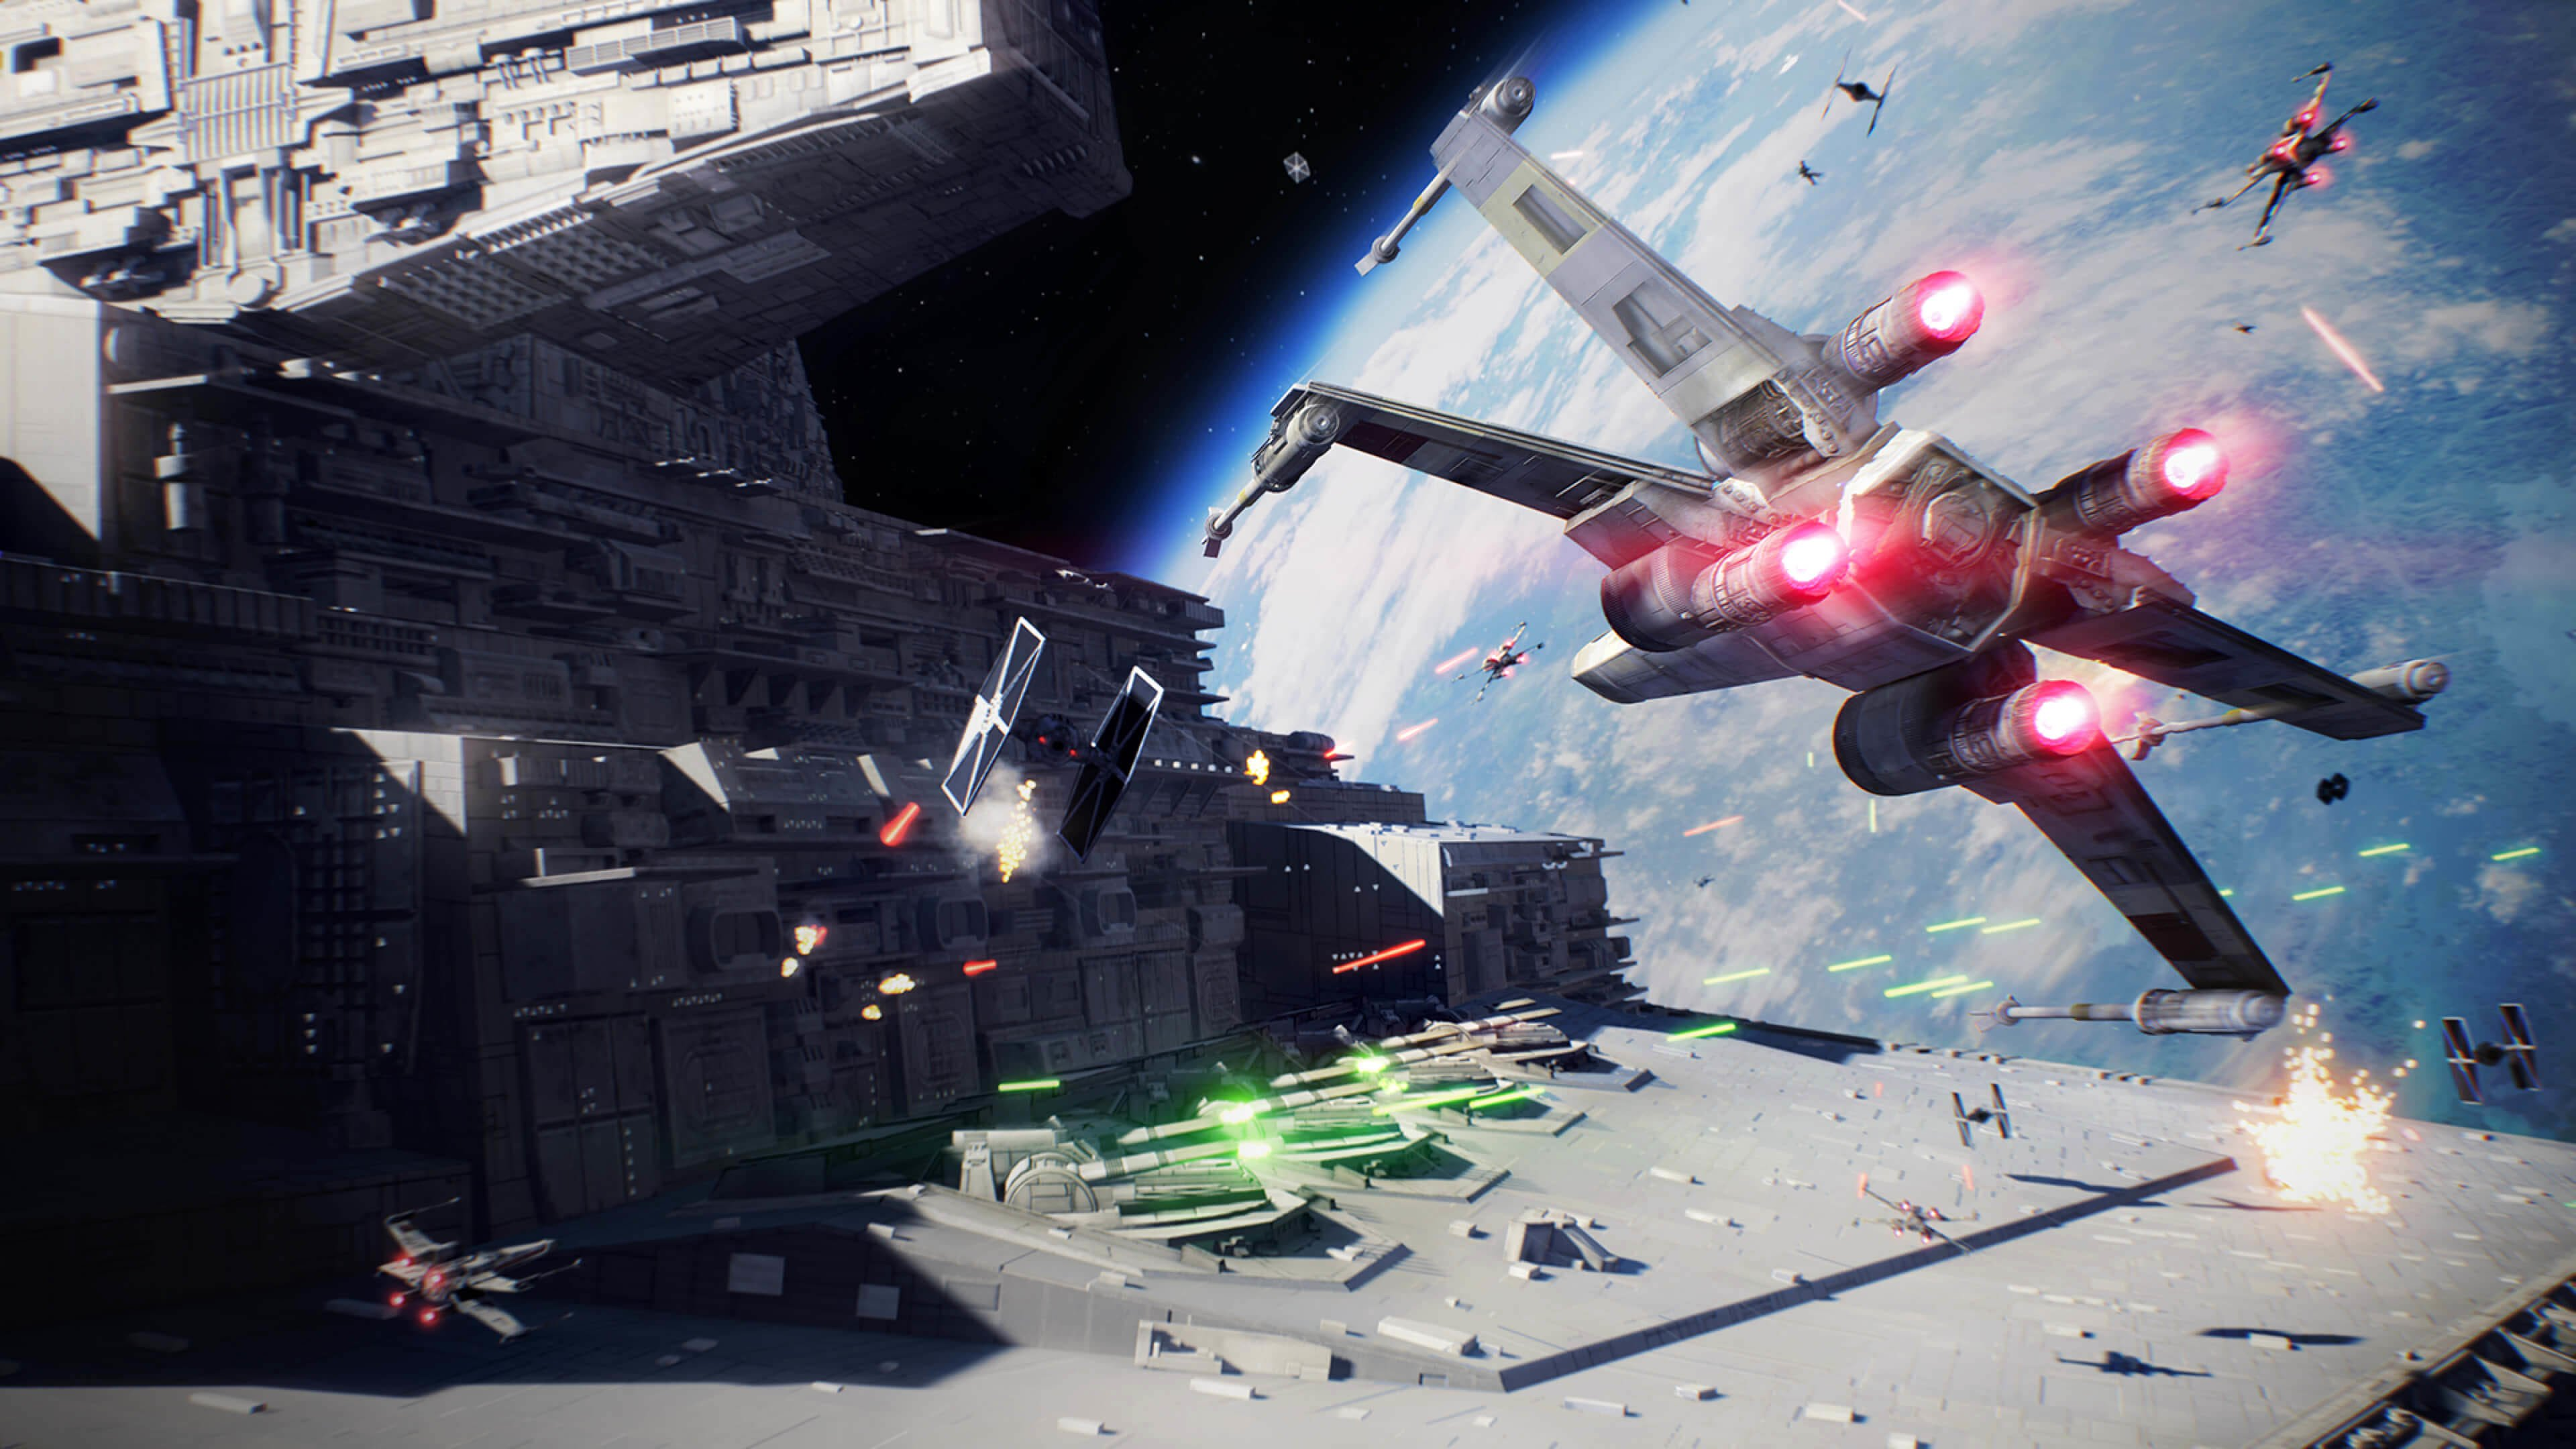 Free Download Star Wars Space Battle Wallpaper 61 Images 3840x2160 For Your Desktop Mobile Tablet Explore 60 Star Wars Space Battle Background Star Wars Space Battle Background Star Wars